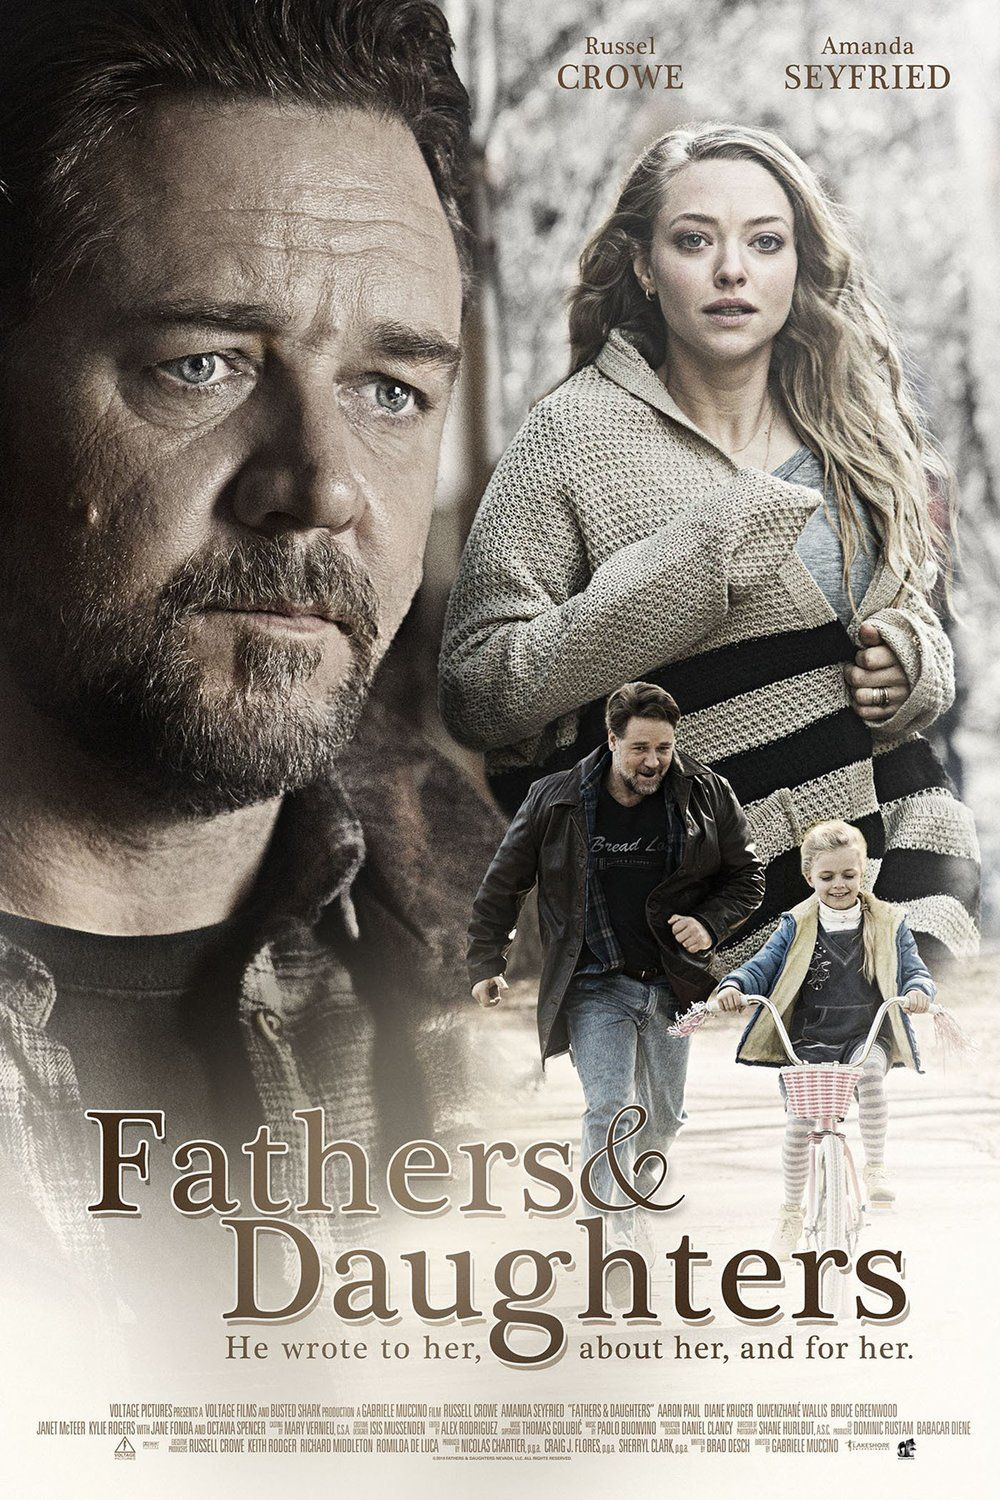 Fathers Daughters - 2018 film